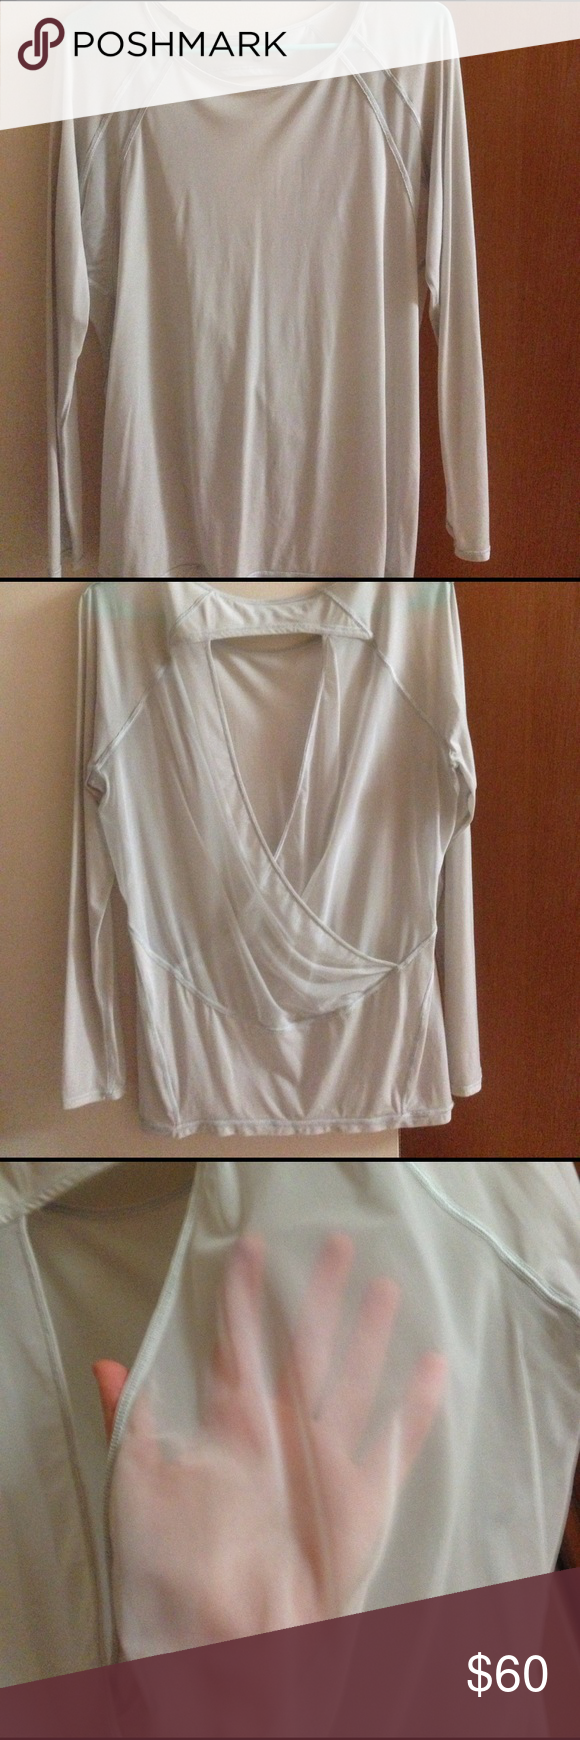 """Lululemon """"If you're lucky"""" long sleeve Worn several times, pretty much see thru, don't remember what size it is but would for S/M lululemon athletica Tops Tees - Long Sleeve"""